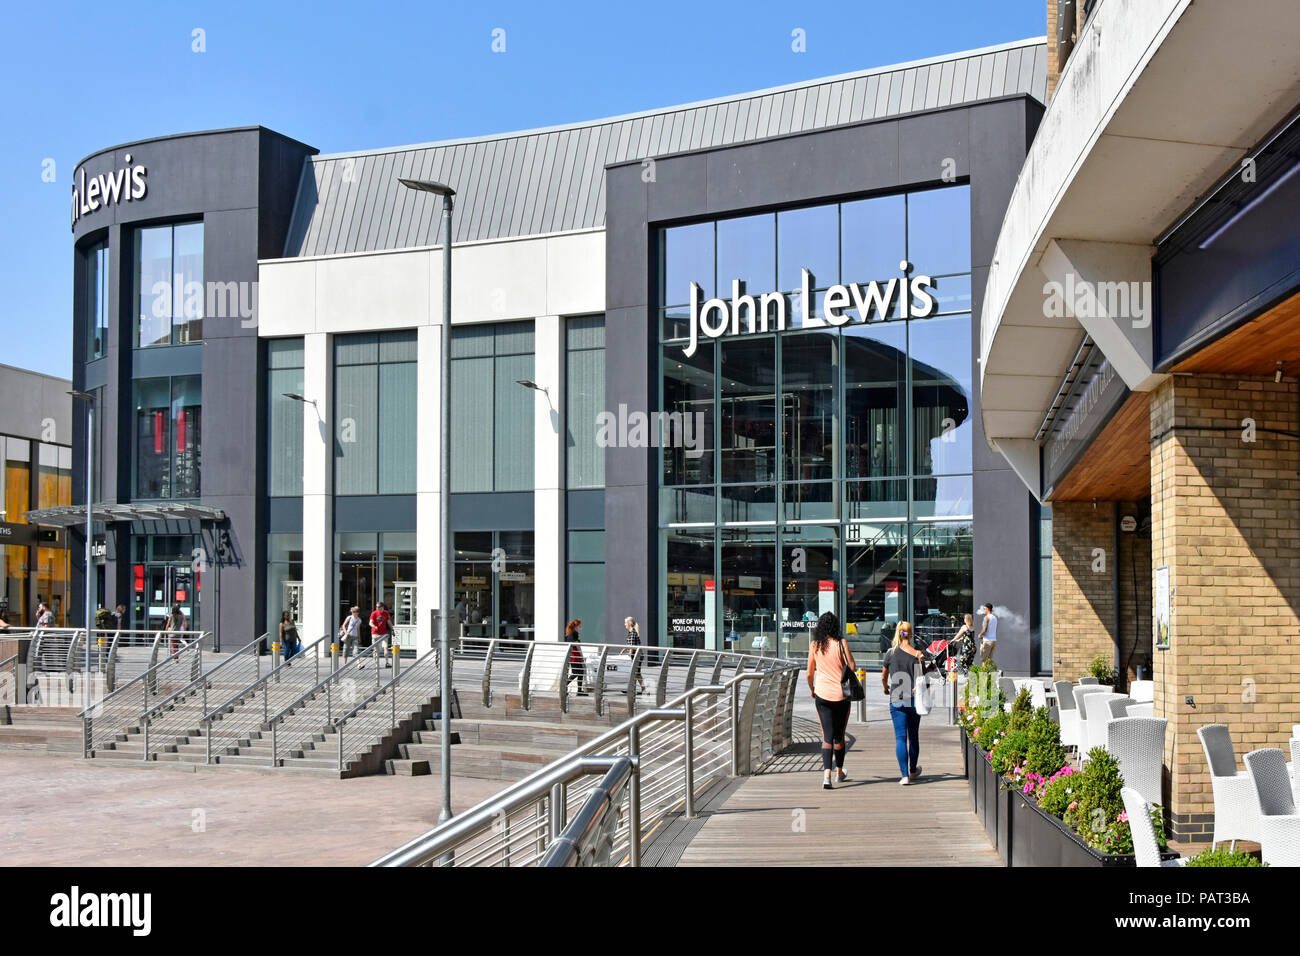 Exterior modern architecture design new john lewis department store building in chelmsford town shopping centre